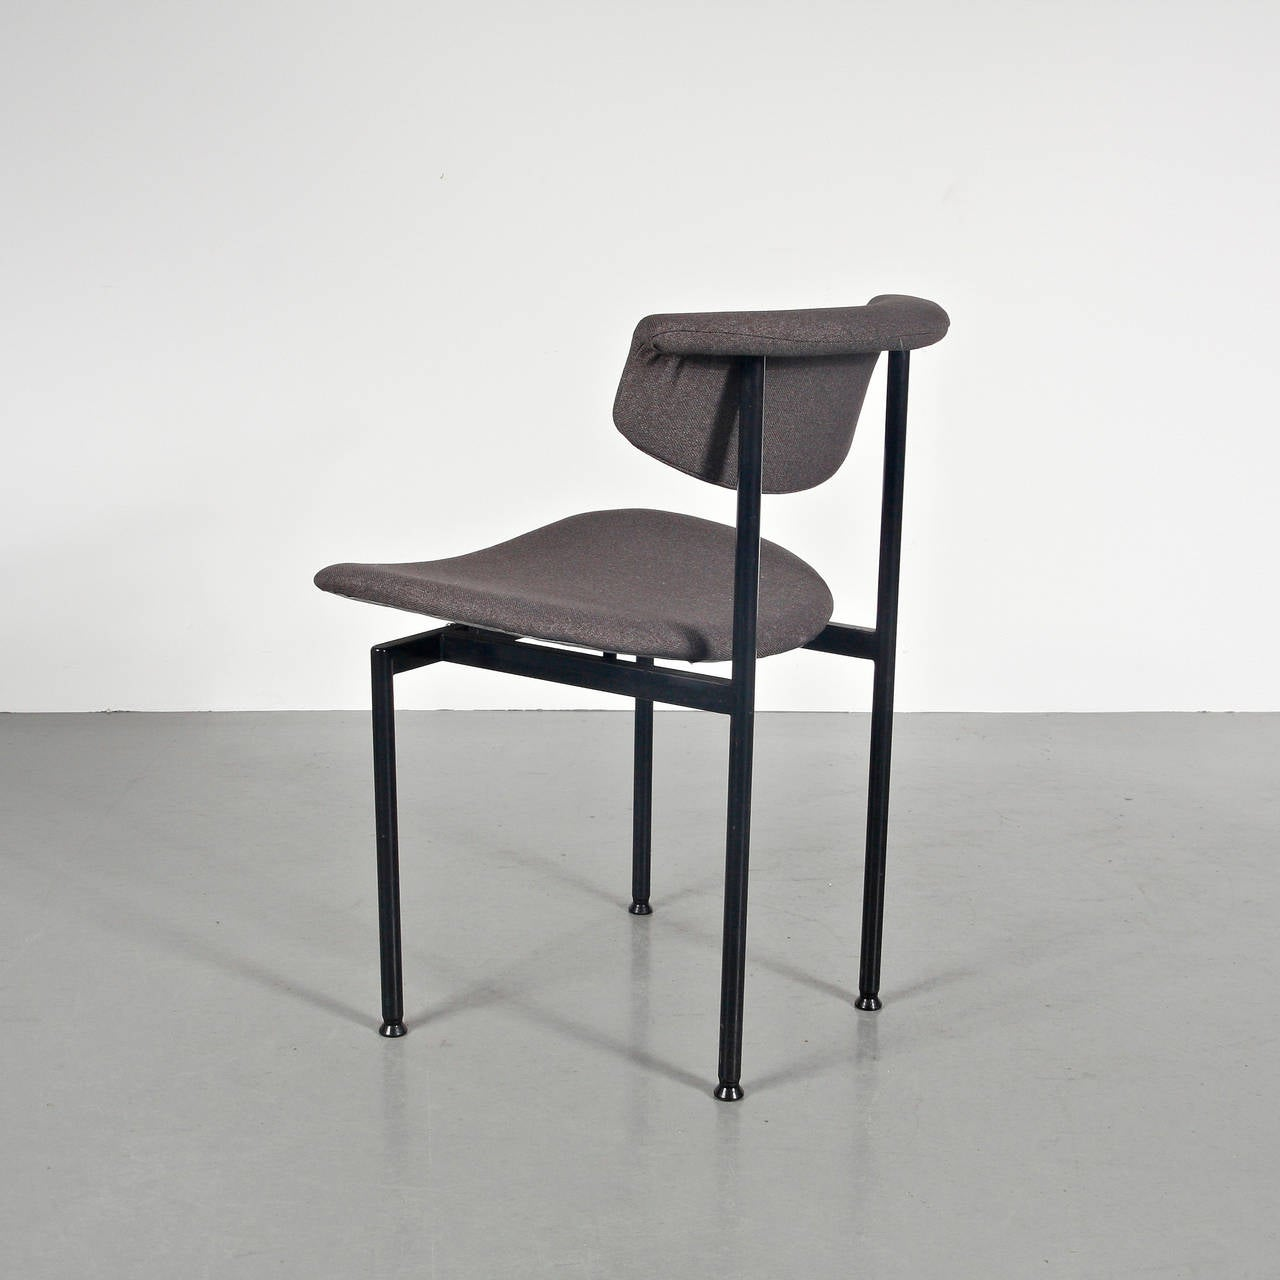 Set of 8 dining chairs, model alpha from the Meander Serie, designed by Rudolf Wolf. Manufactured by Meandre (Netherlands), circa 1960. Steel structure, deep foam seat and backrest with refined new upholstery.   Color of upholstery can be